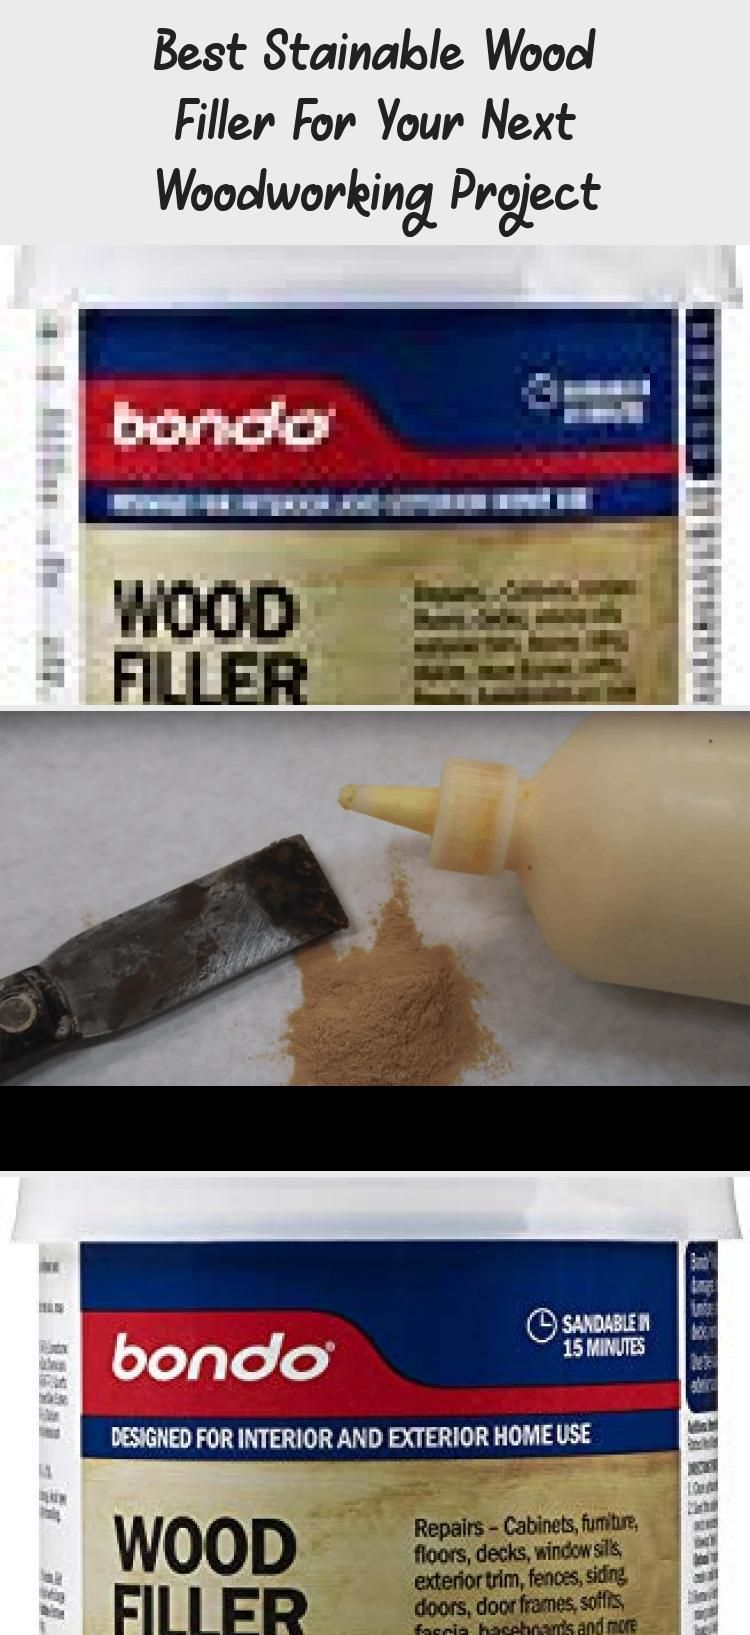 Best Stainable Wood Filler For Your Next Woodworking